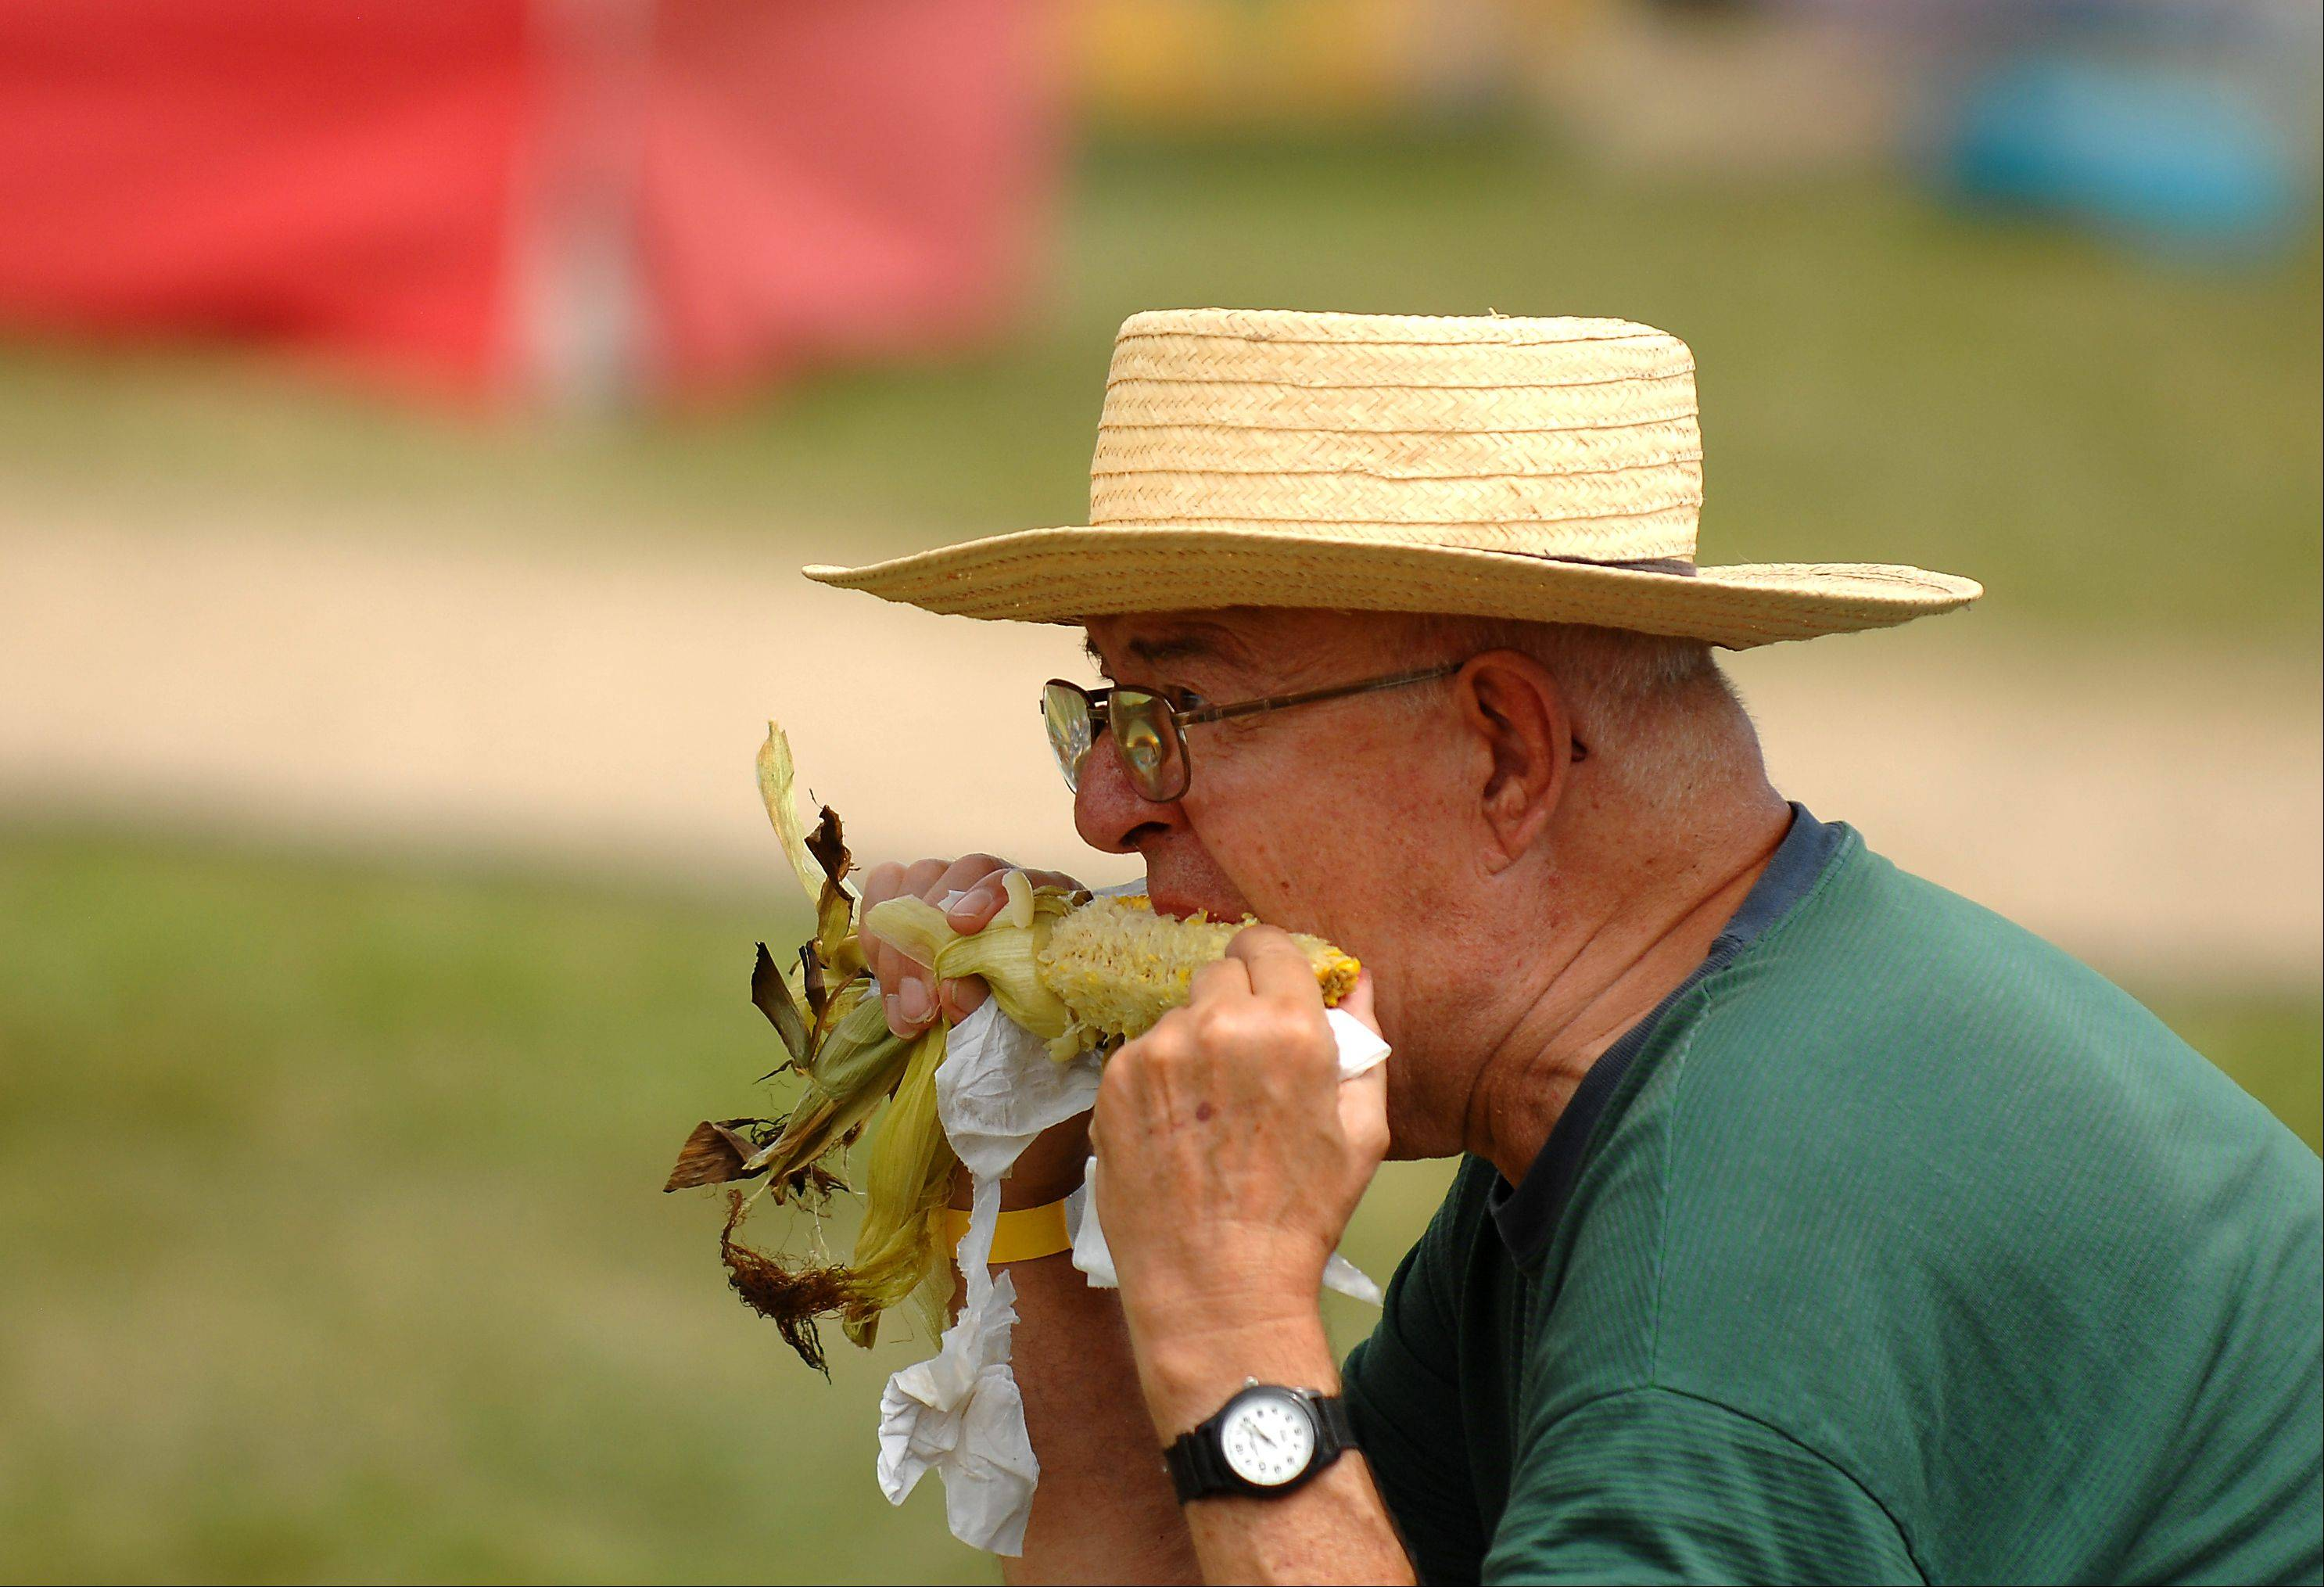 Ralph Johnson of Richmond enjoys an ear of fresh roasted corn during day two of the McHenry County Fair.